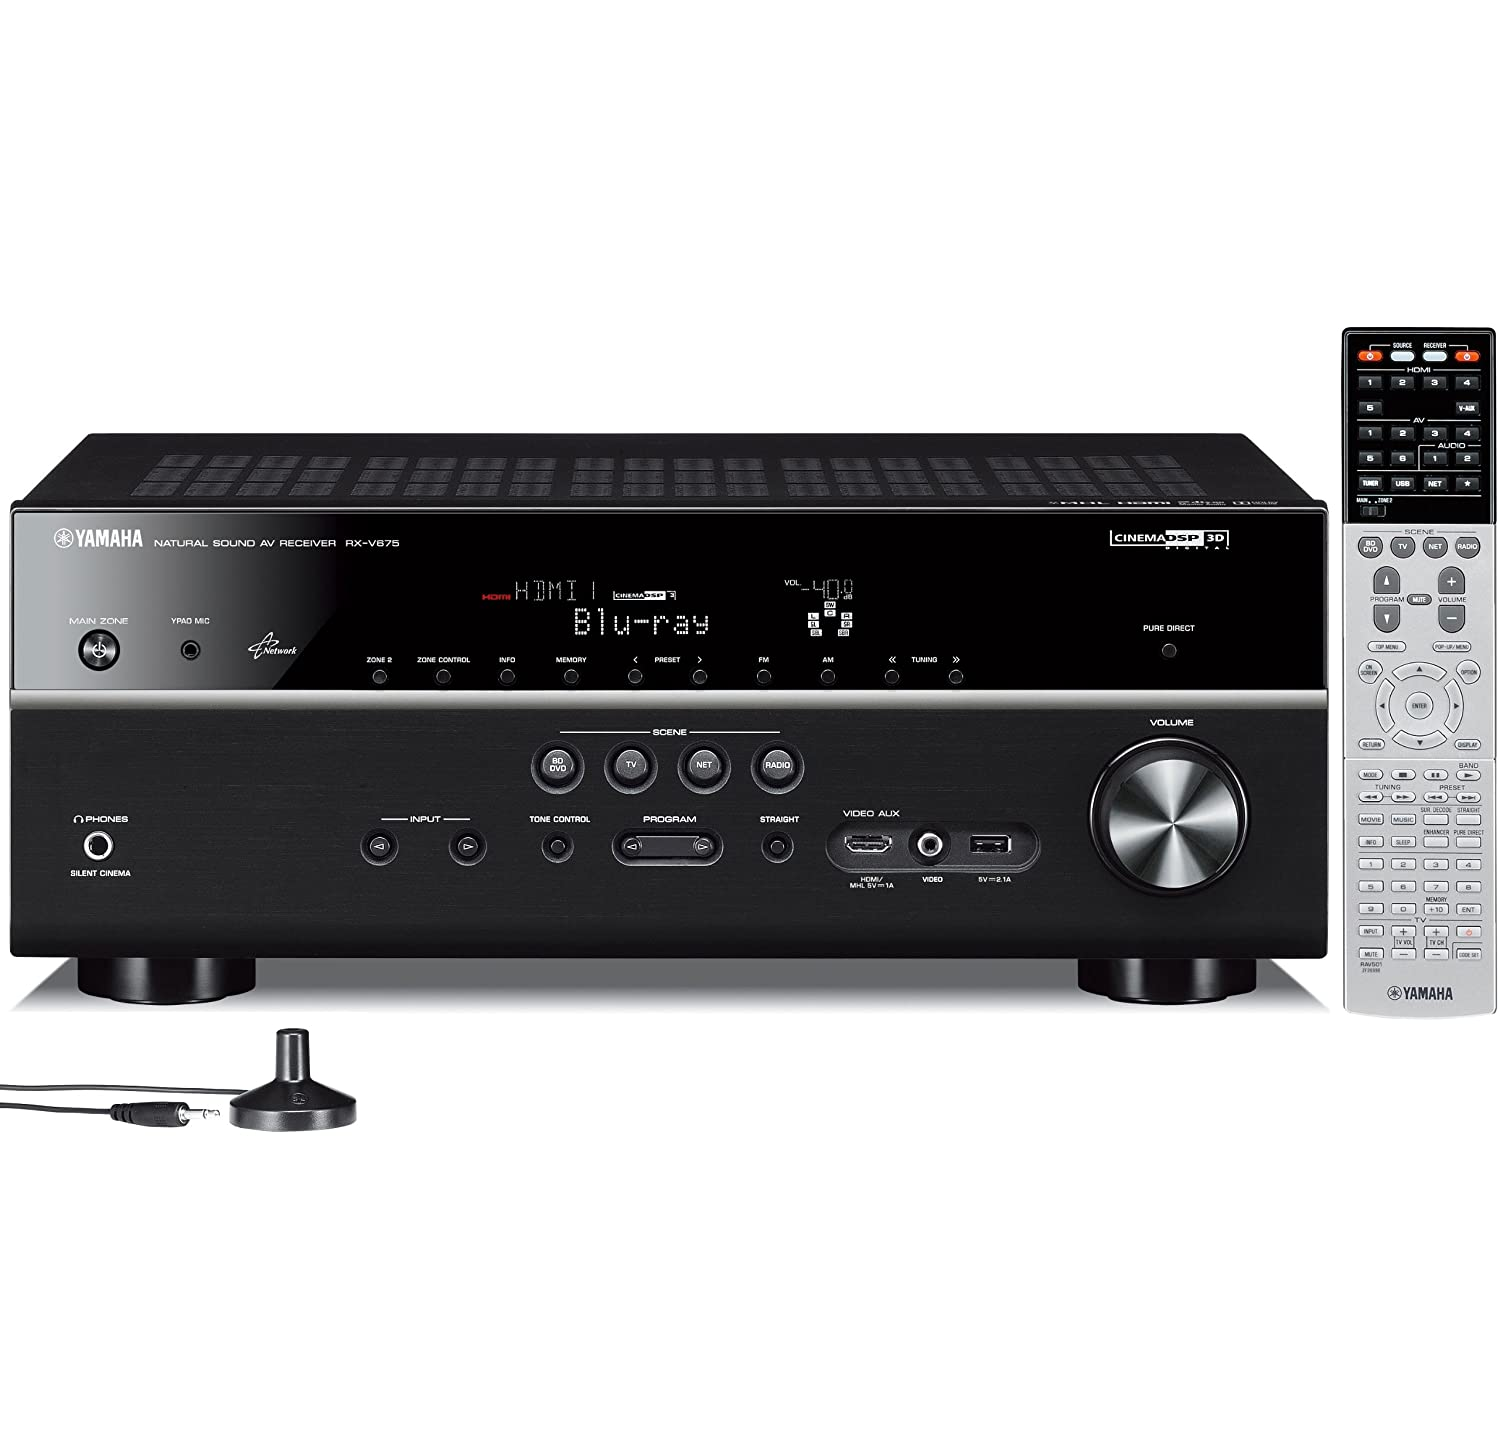 Yamaha RX-V675 7 2 Channel Network AV Receiver with Airplay (Discontinued  by Manufacturer)